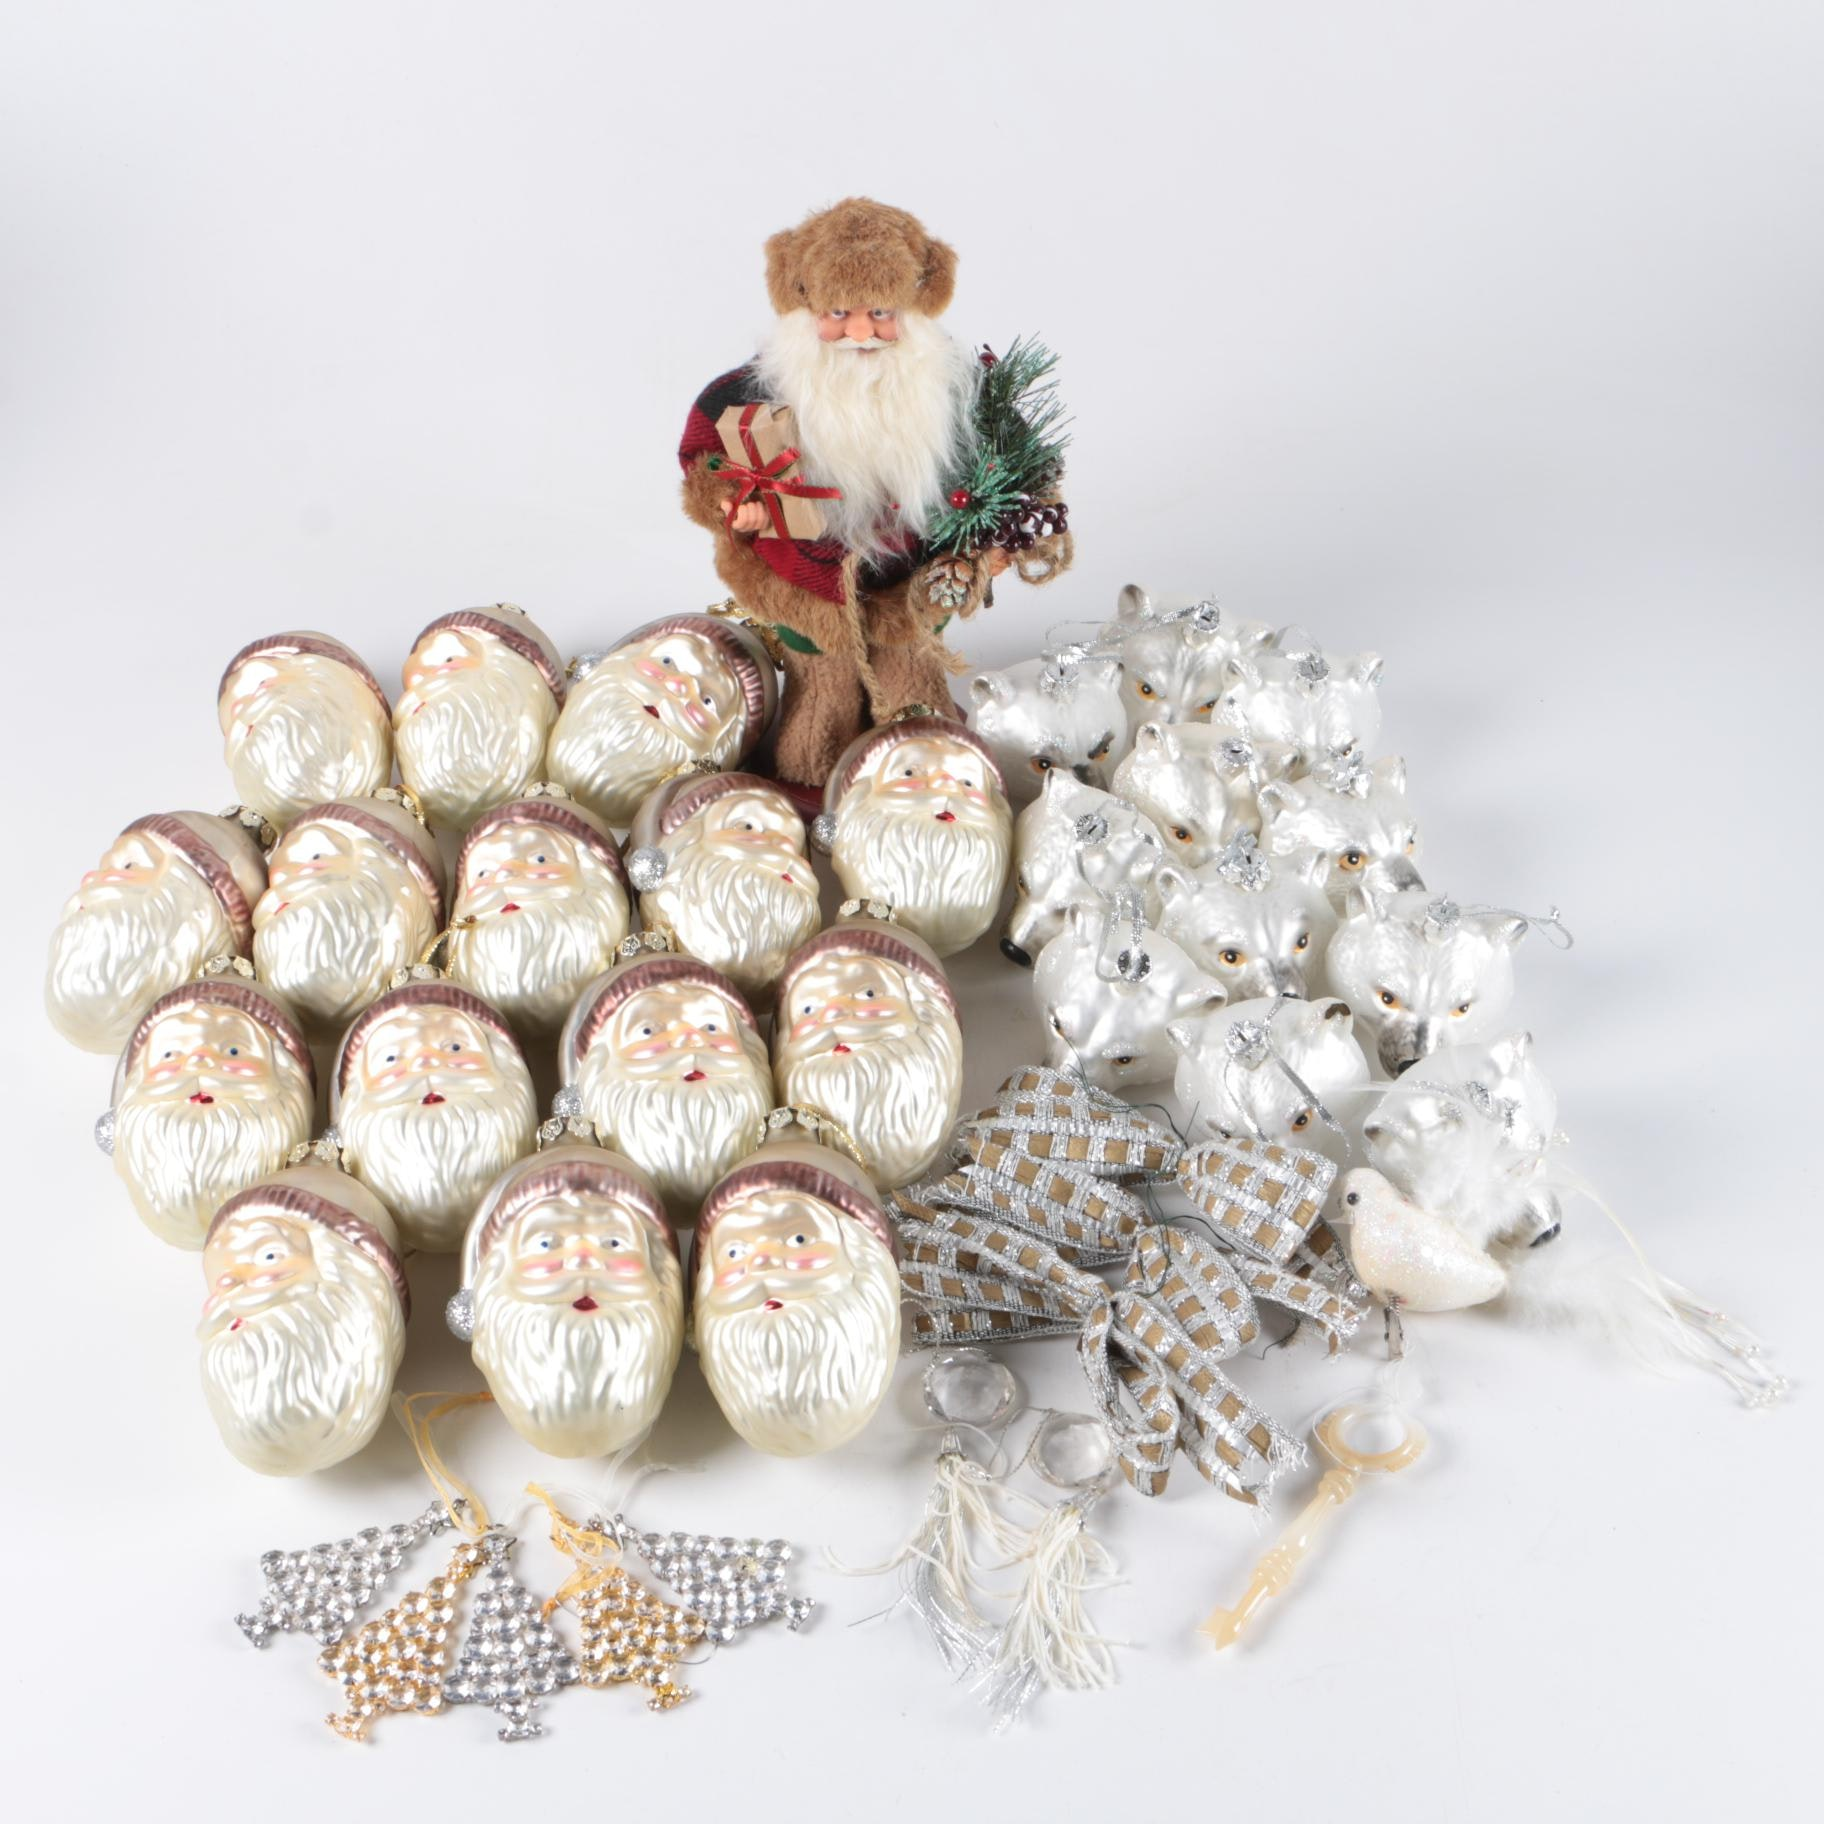 Glass Christmas Ornaments with Plastic Santa Figurine